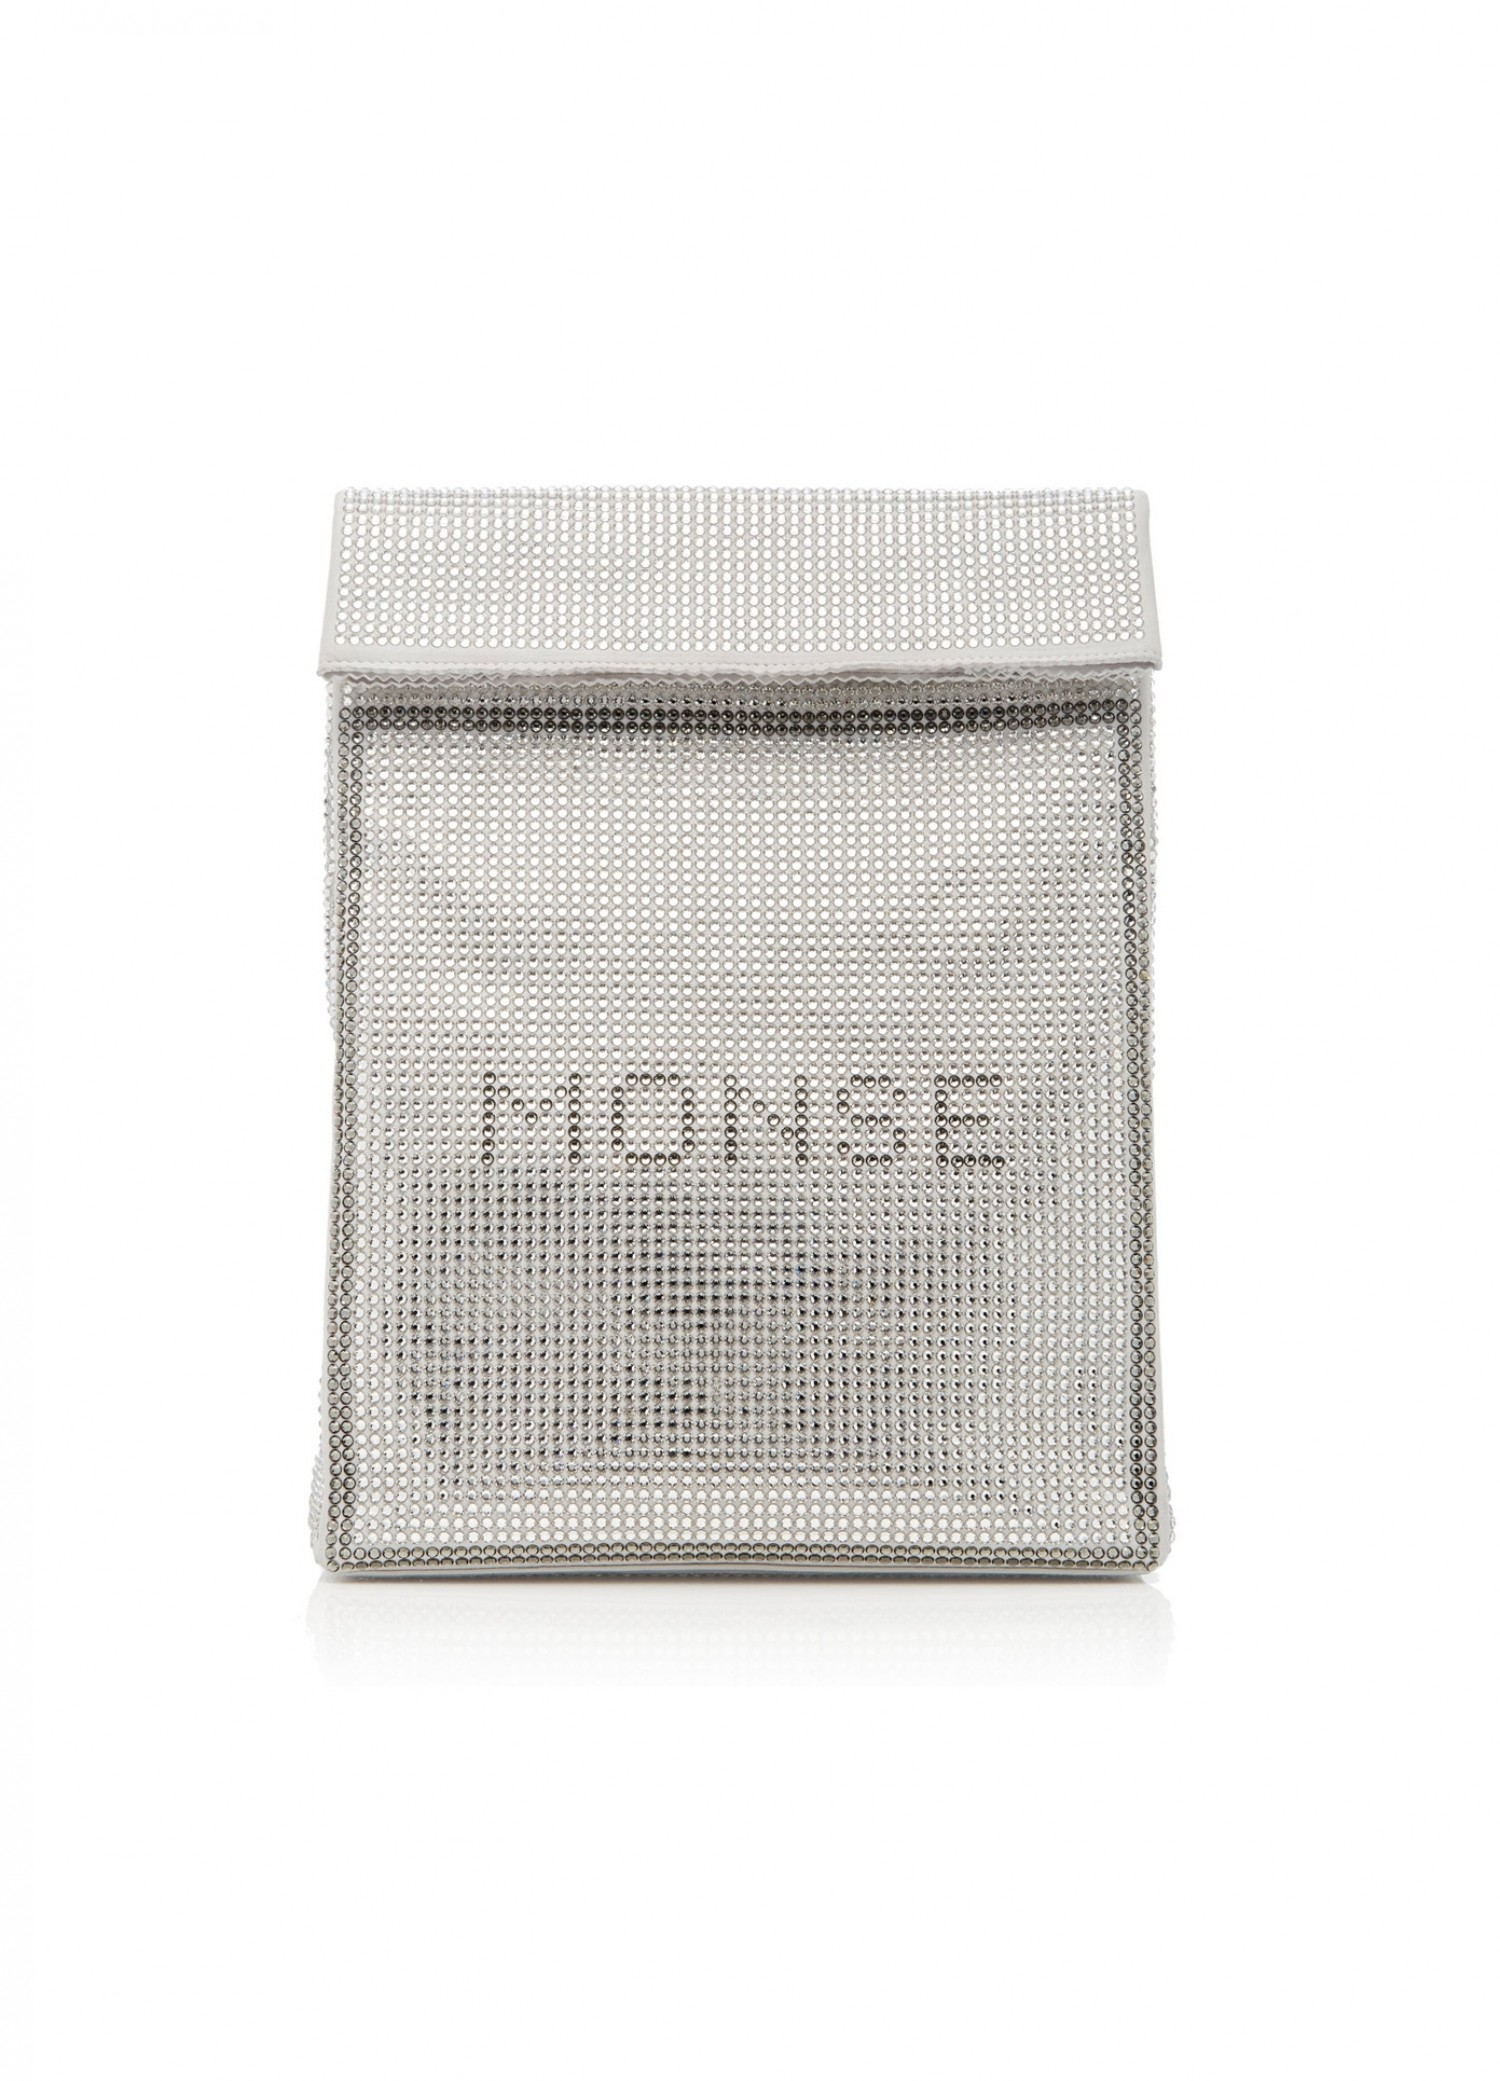 MONSE Crystal Bag Front View